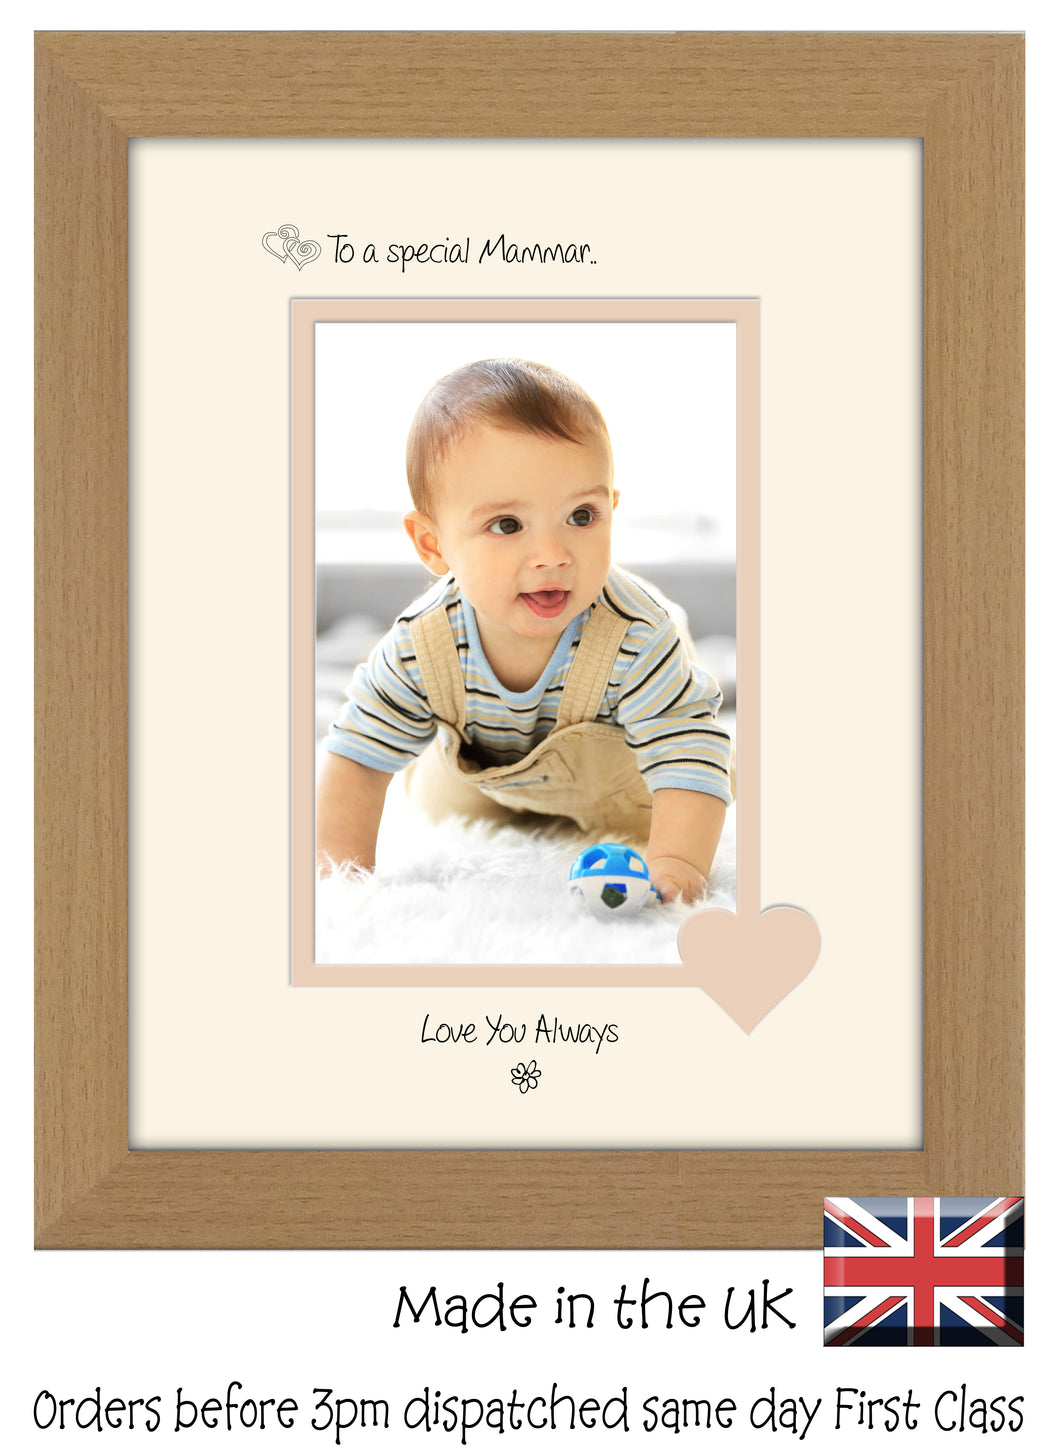 Mammar Photo Frame - To a Special Mammar ... Love you Always Portrait photo frame 6